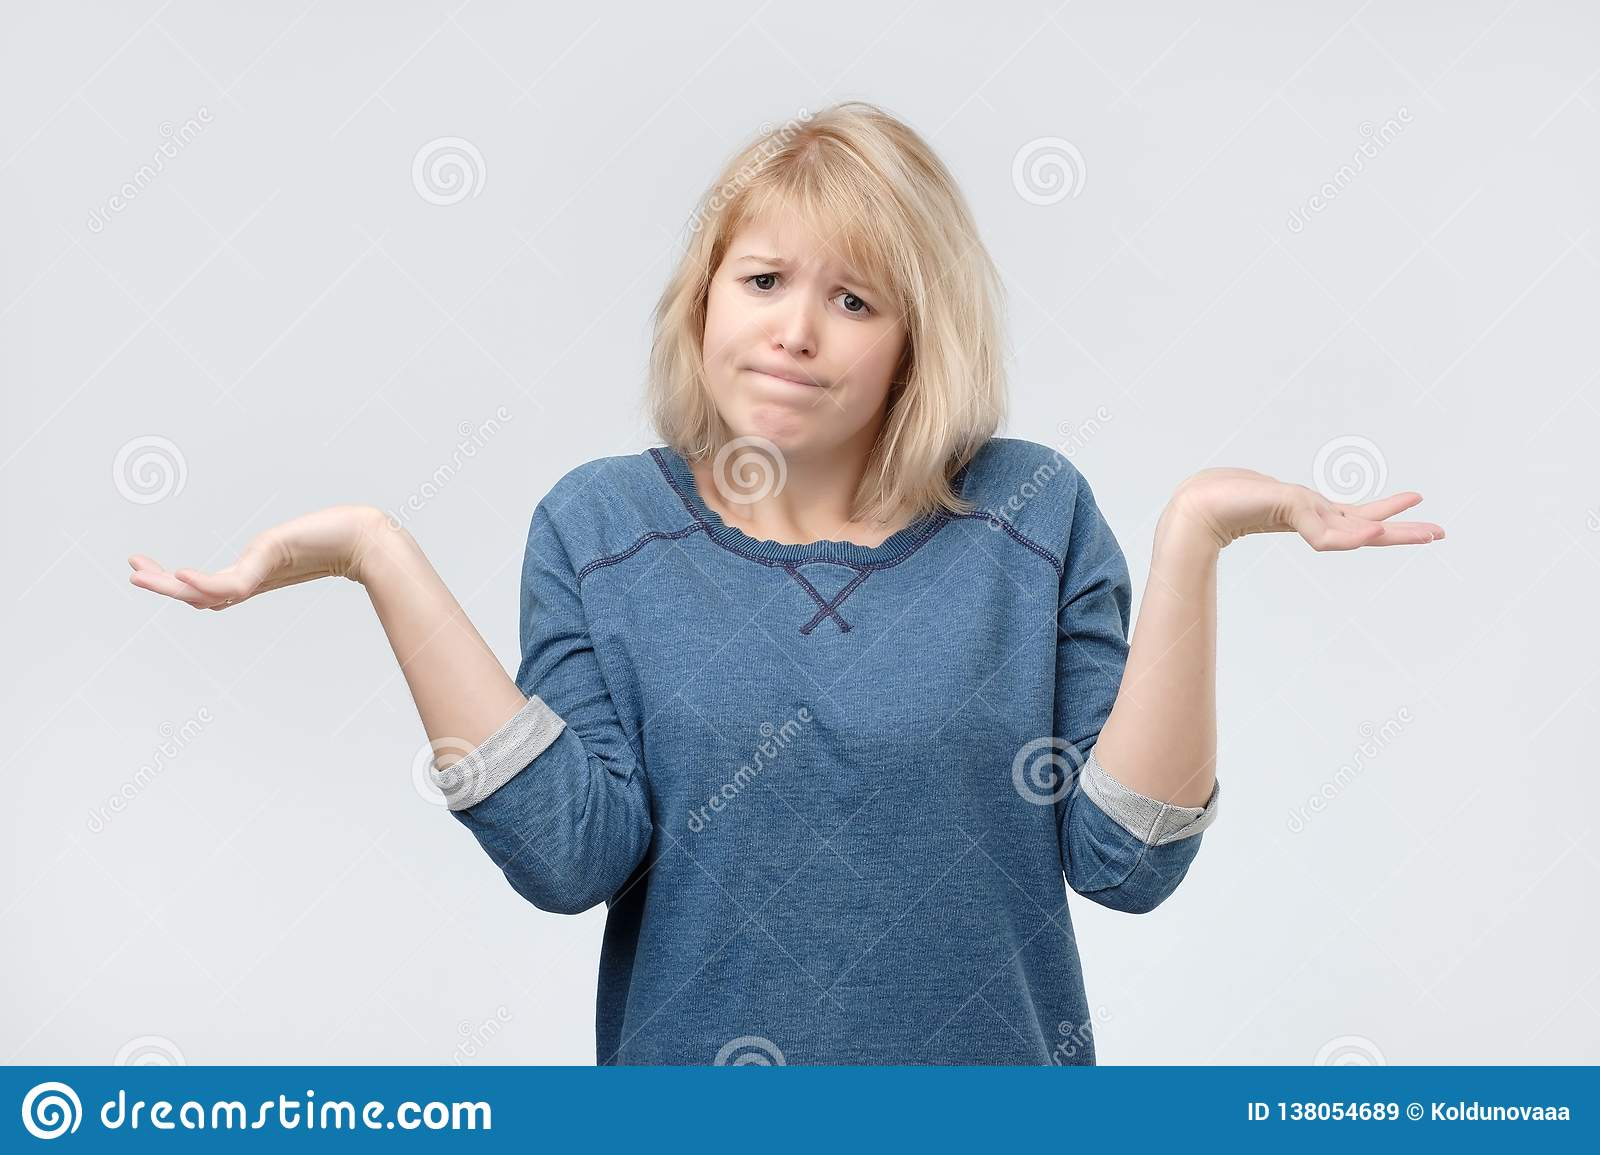 Woman with blonde hair looking in confusion, shrugs shoulders as do not know answer, being clueless